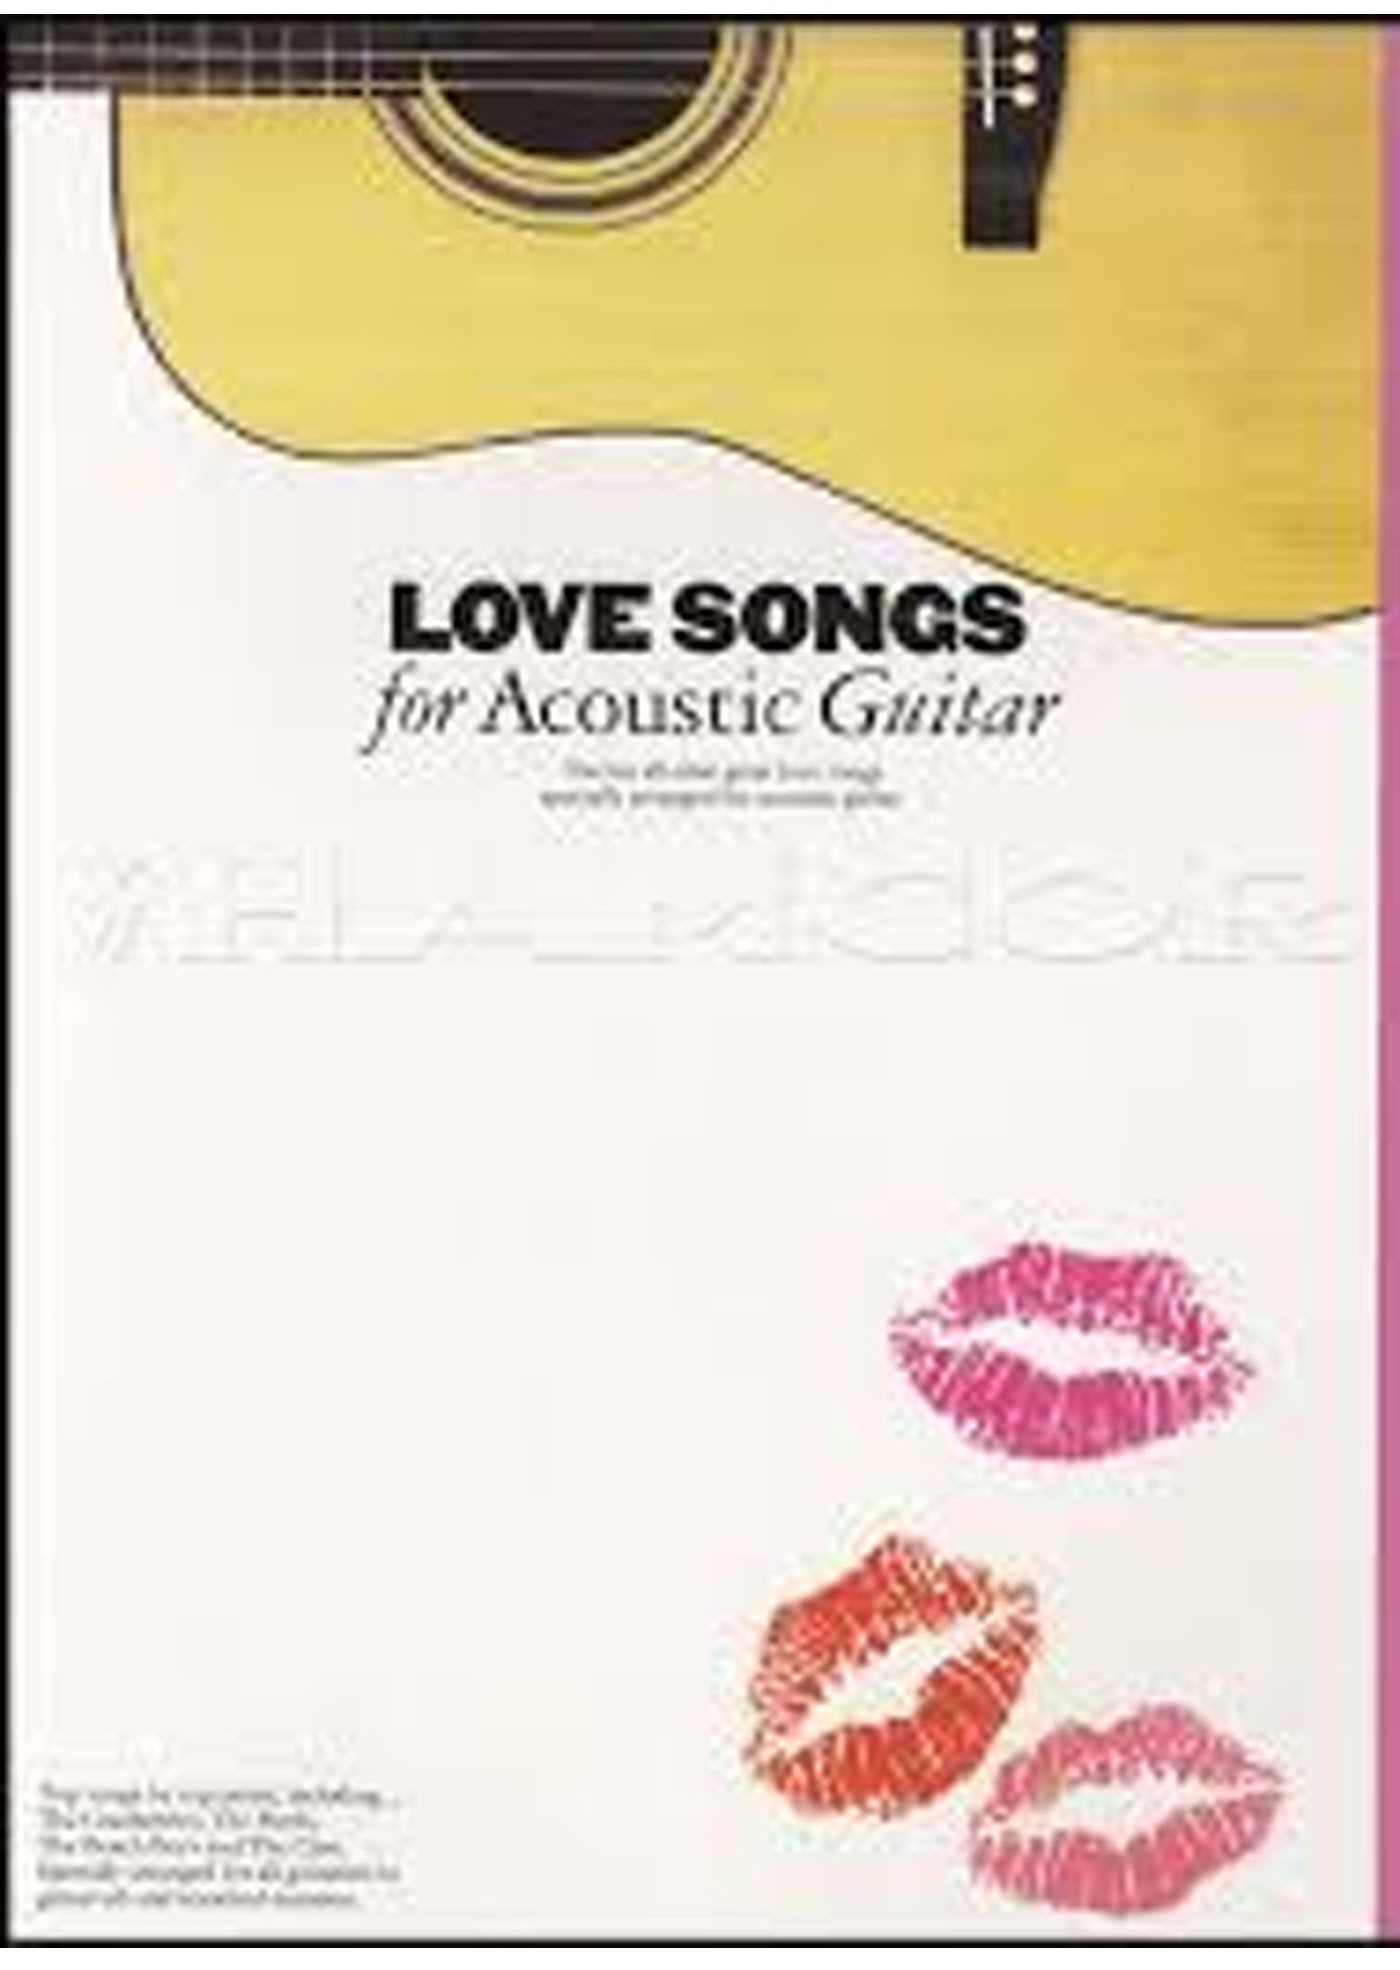 Love Songs for Acoustic Guitar Book Notes Tab Chords The Cure Sting Ash S158